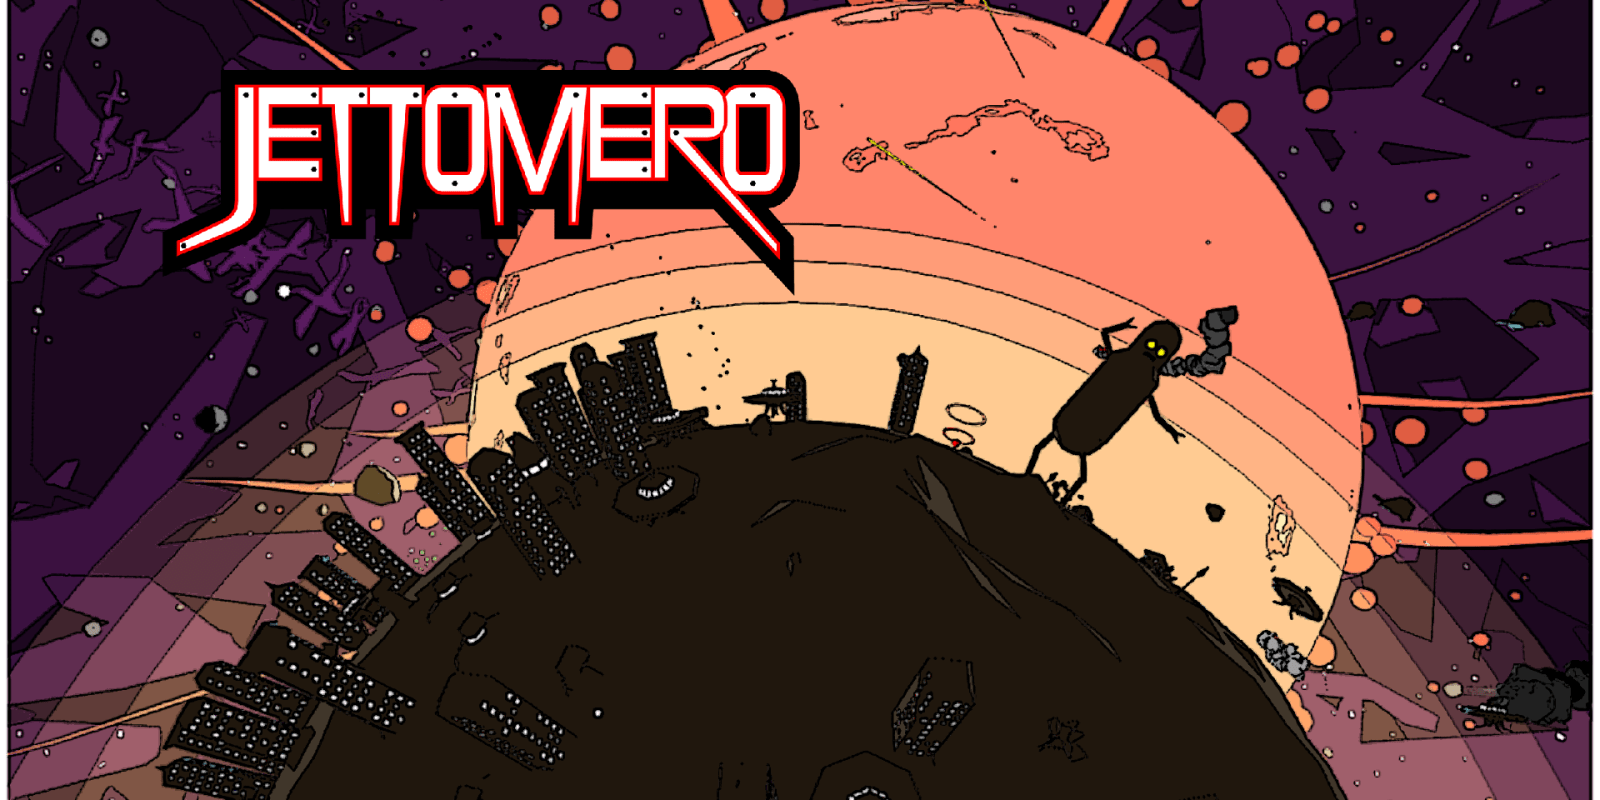 Jettomero: Hero of the Universe